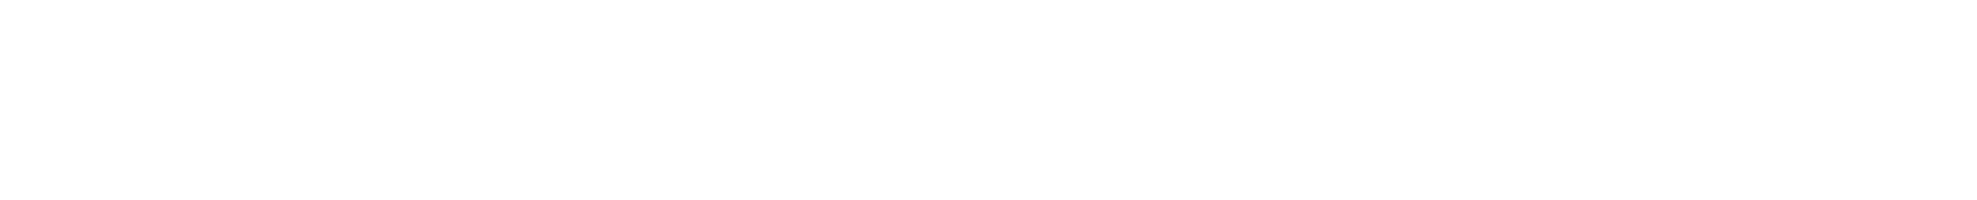 Chicago Race Riot of 1919 Commemoration Project